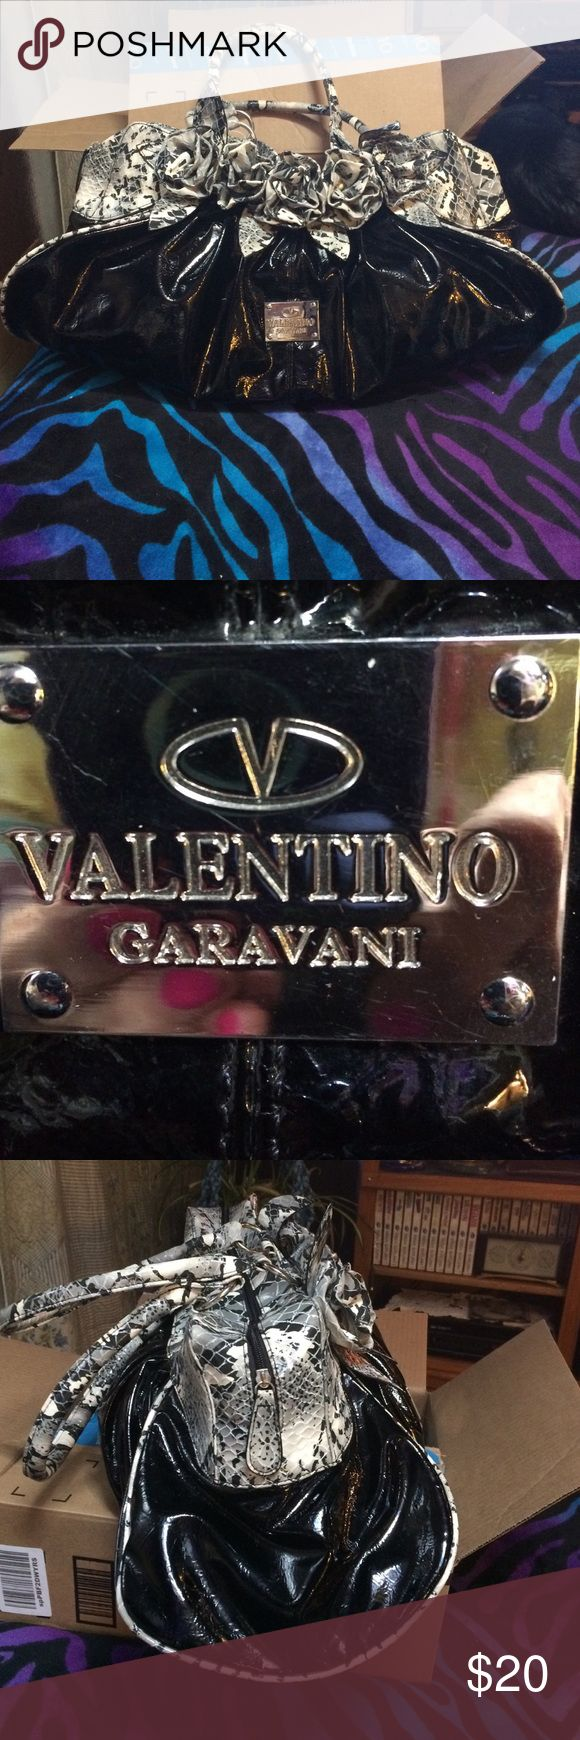 Valentino Garavani🌺made in China🌺huge purse Huge❤excellent condition ❤I know nothing of the brand, tag inside says made in china🎀it was a gift🎁not really my style. It's so big it could be like an overnight bag Valentino Garavani Bags